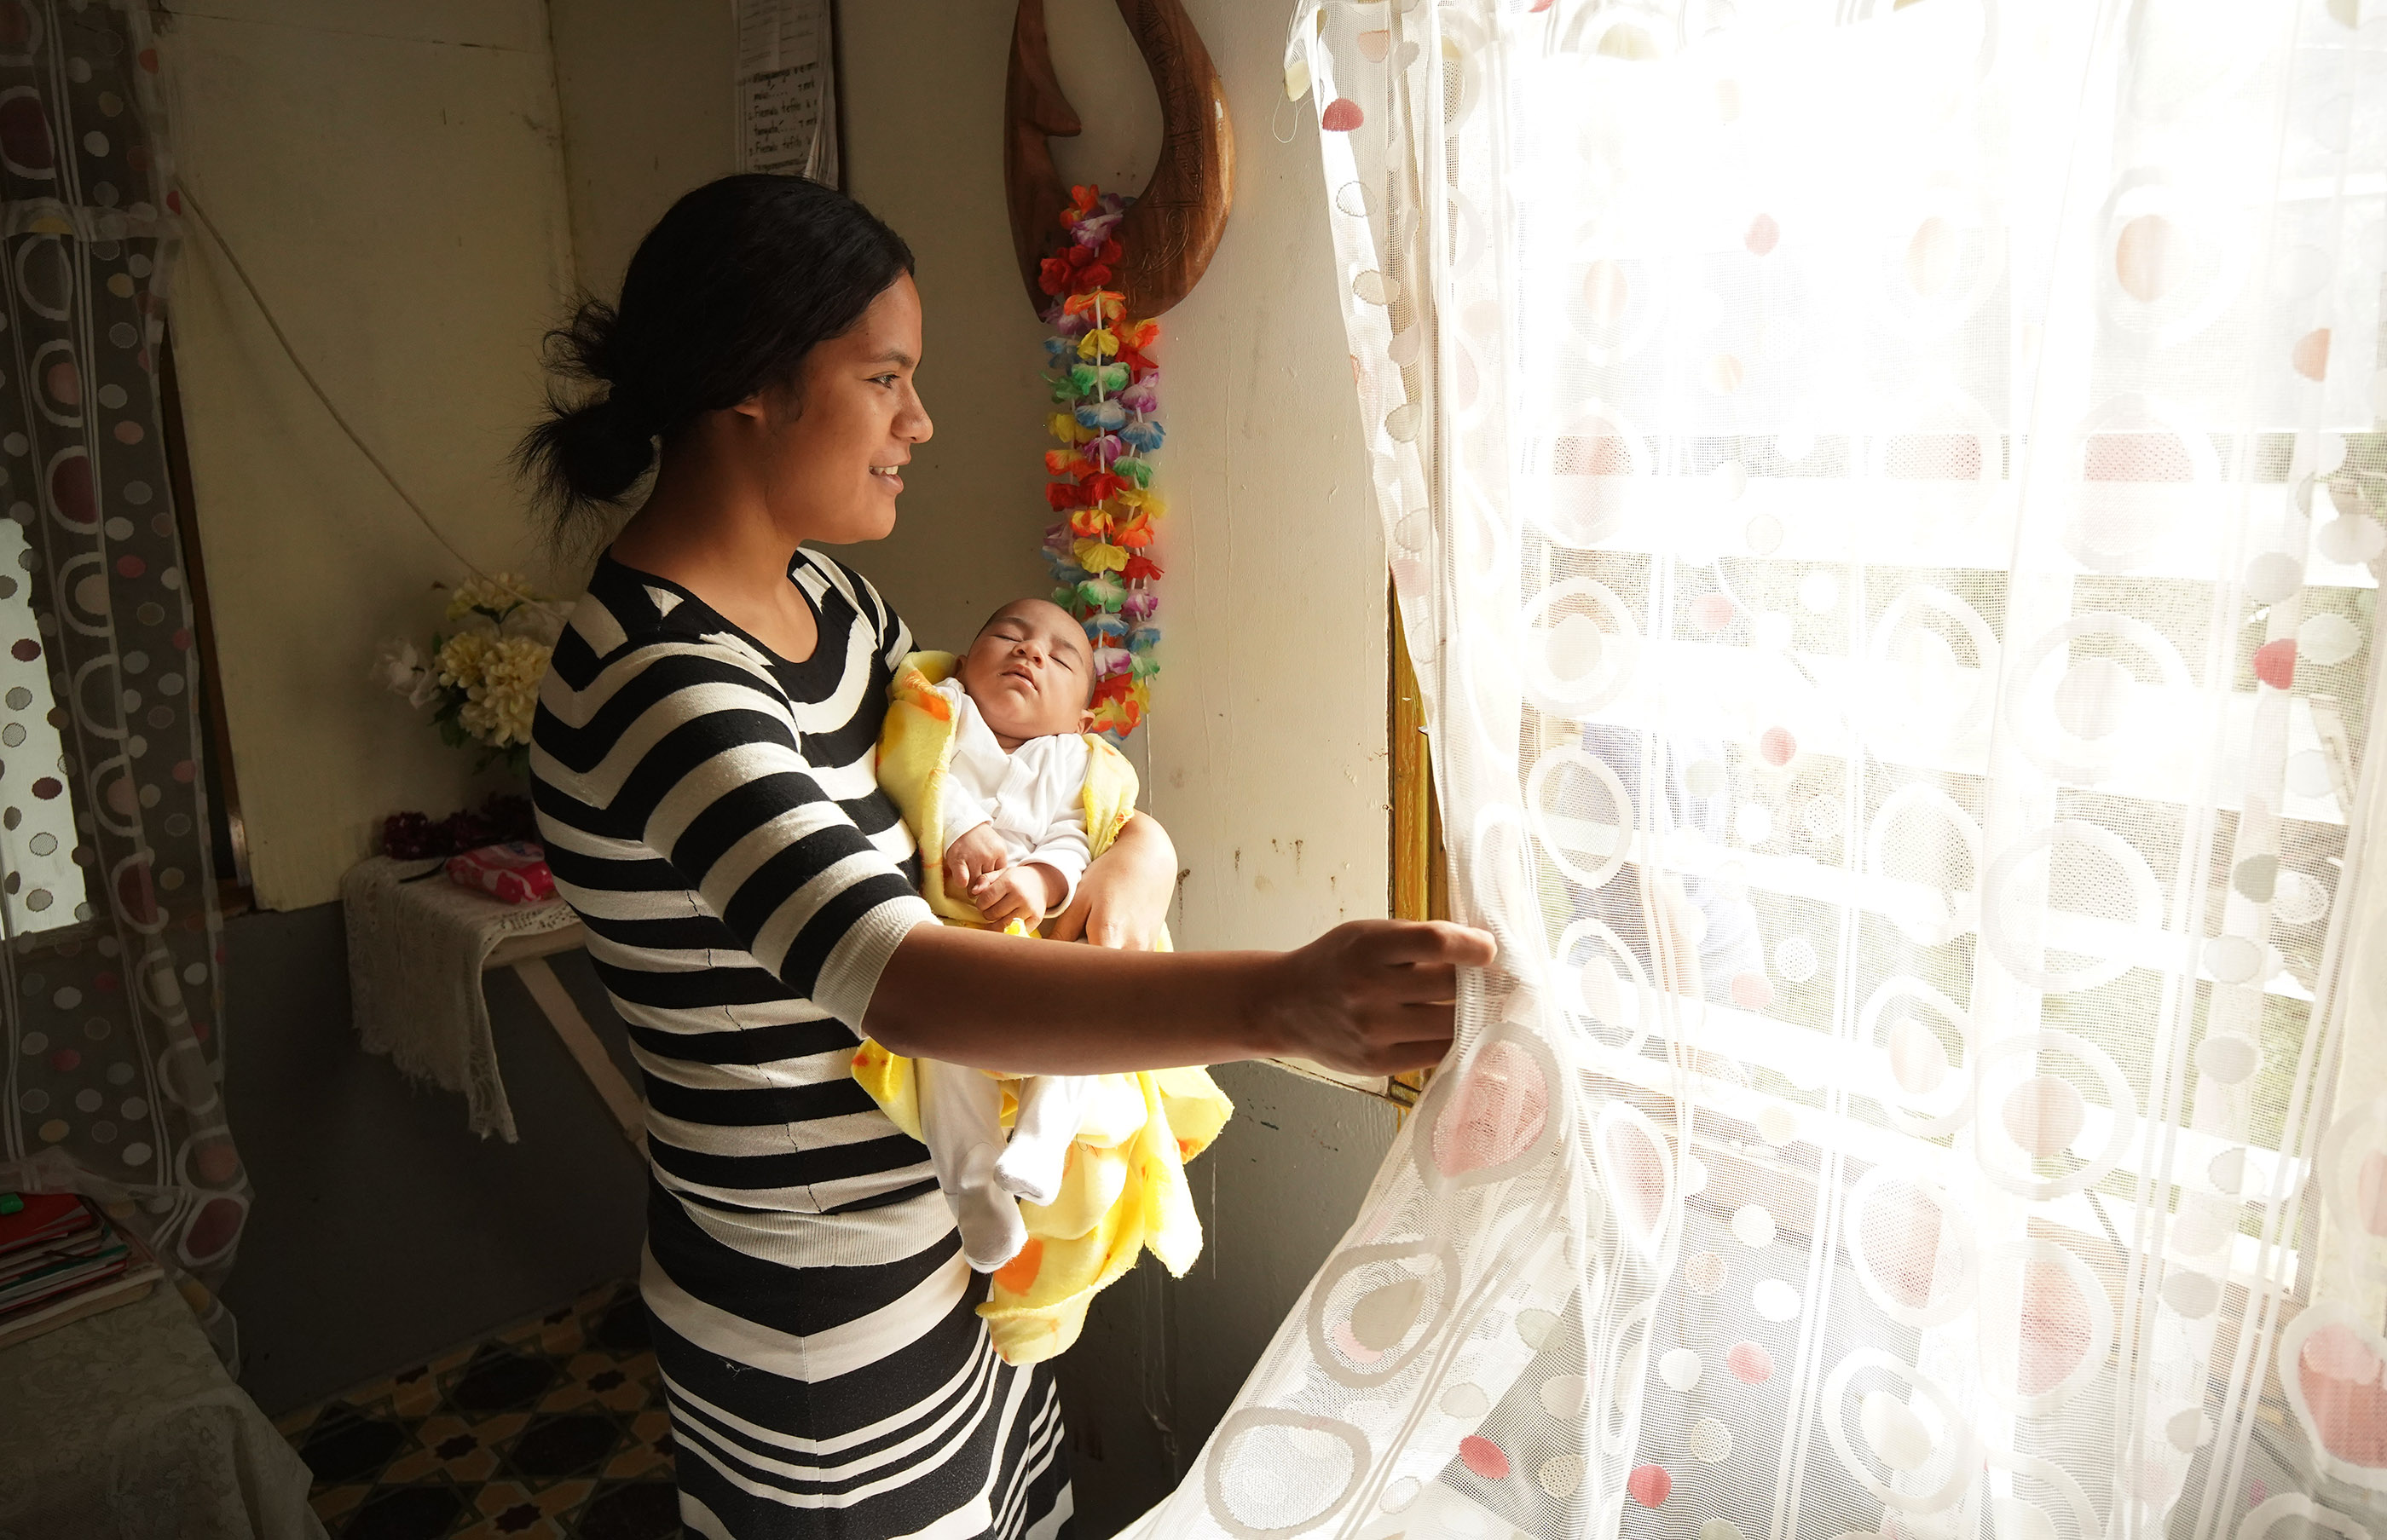 Tohiminiti Latu's daughter-in-law Seini Latu and granddaughter Orson look out of the window in Tonga on May 23, 2019. Tohiminiti Latu is bishop of his ward and has 10 children and one grandchild.